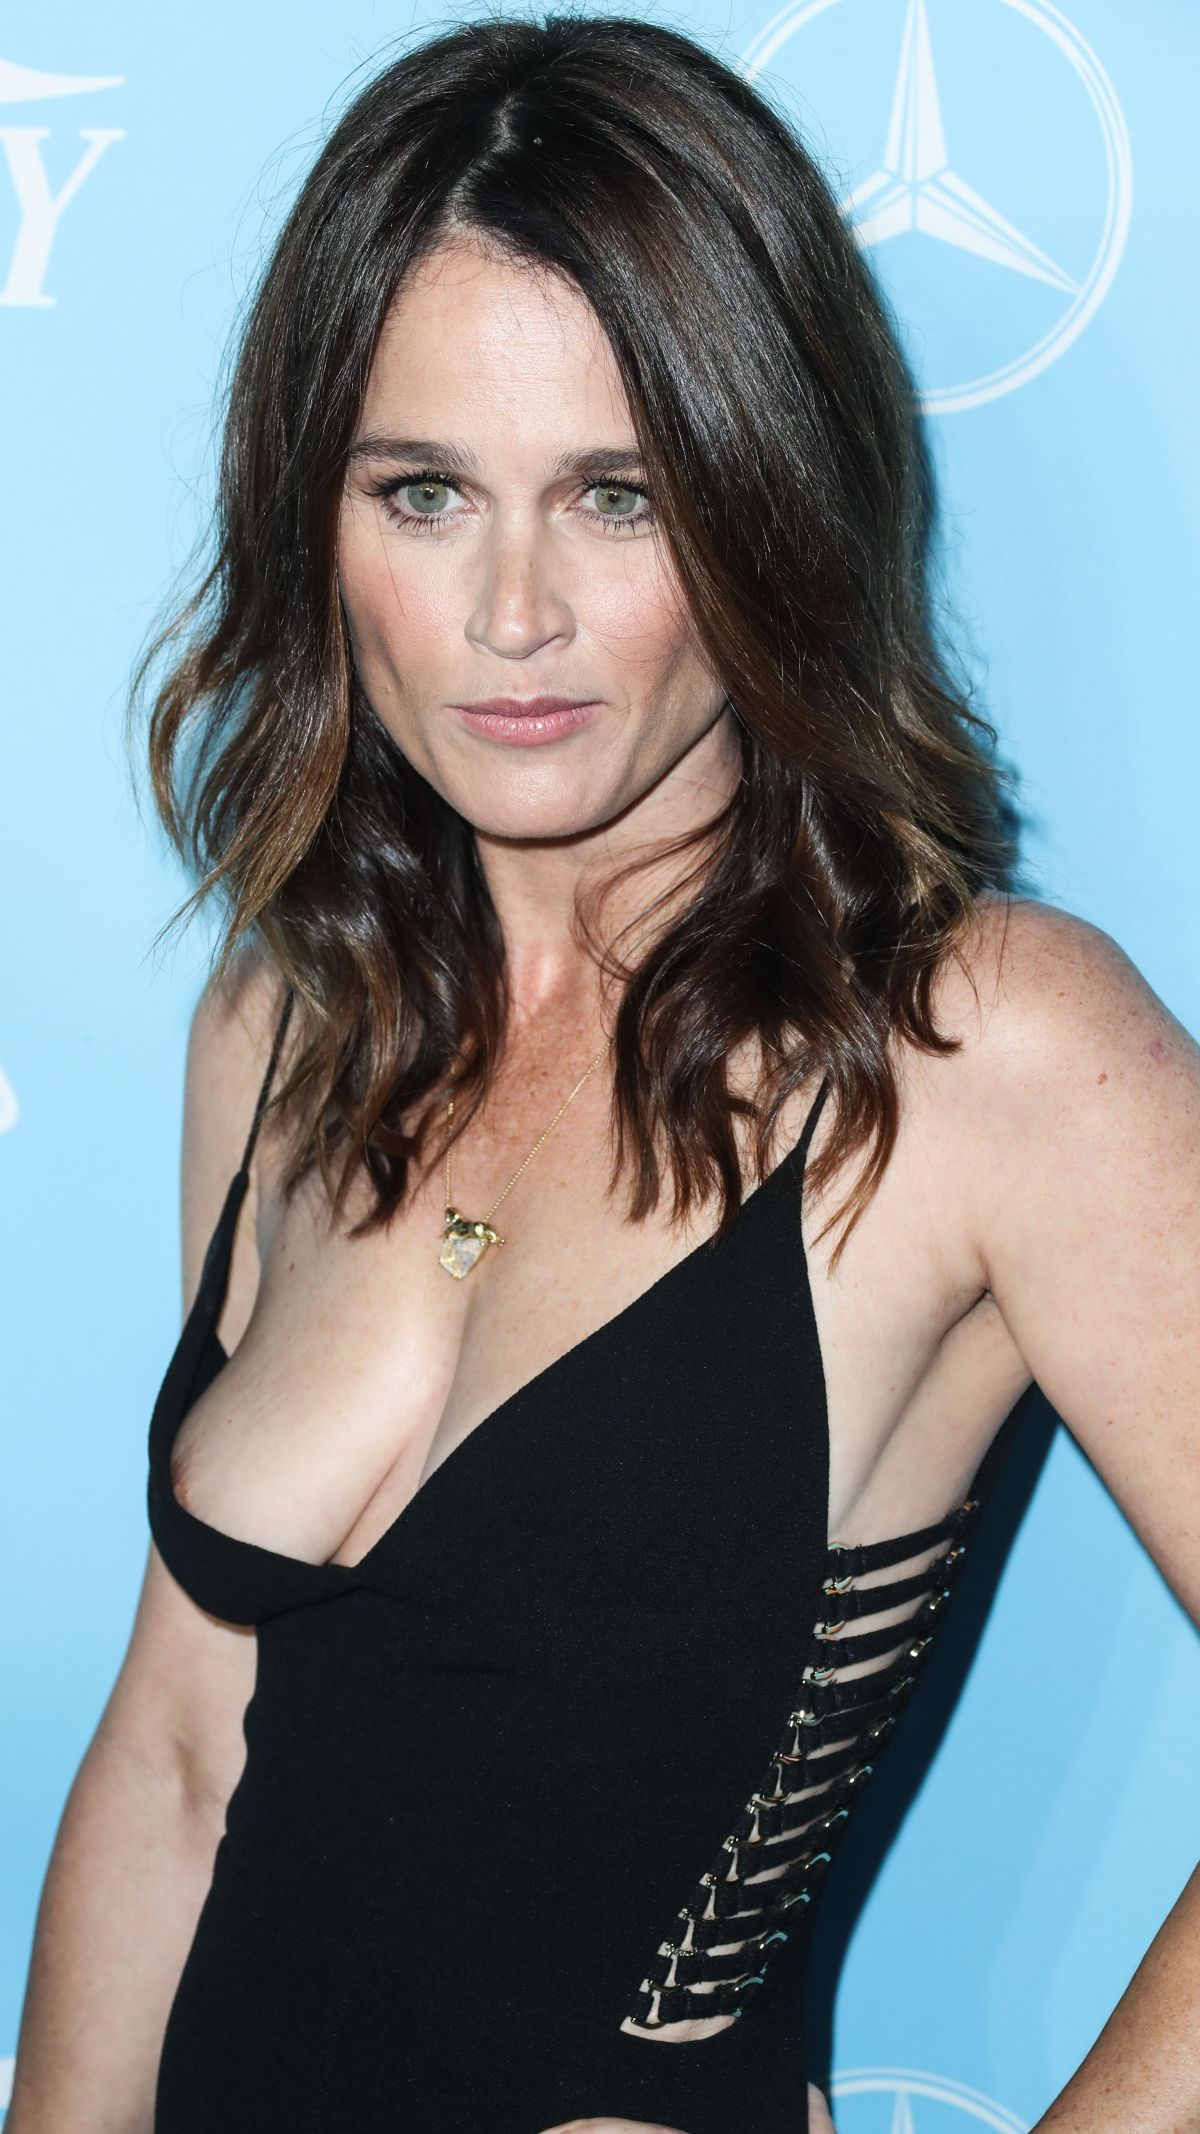 ROBIN TUNNEY at Variety & Women in Film Pre-emmy Celebration in Los Angeles  09